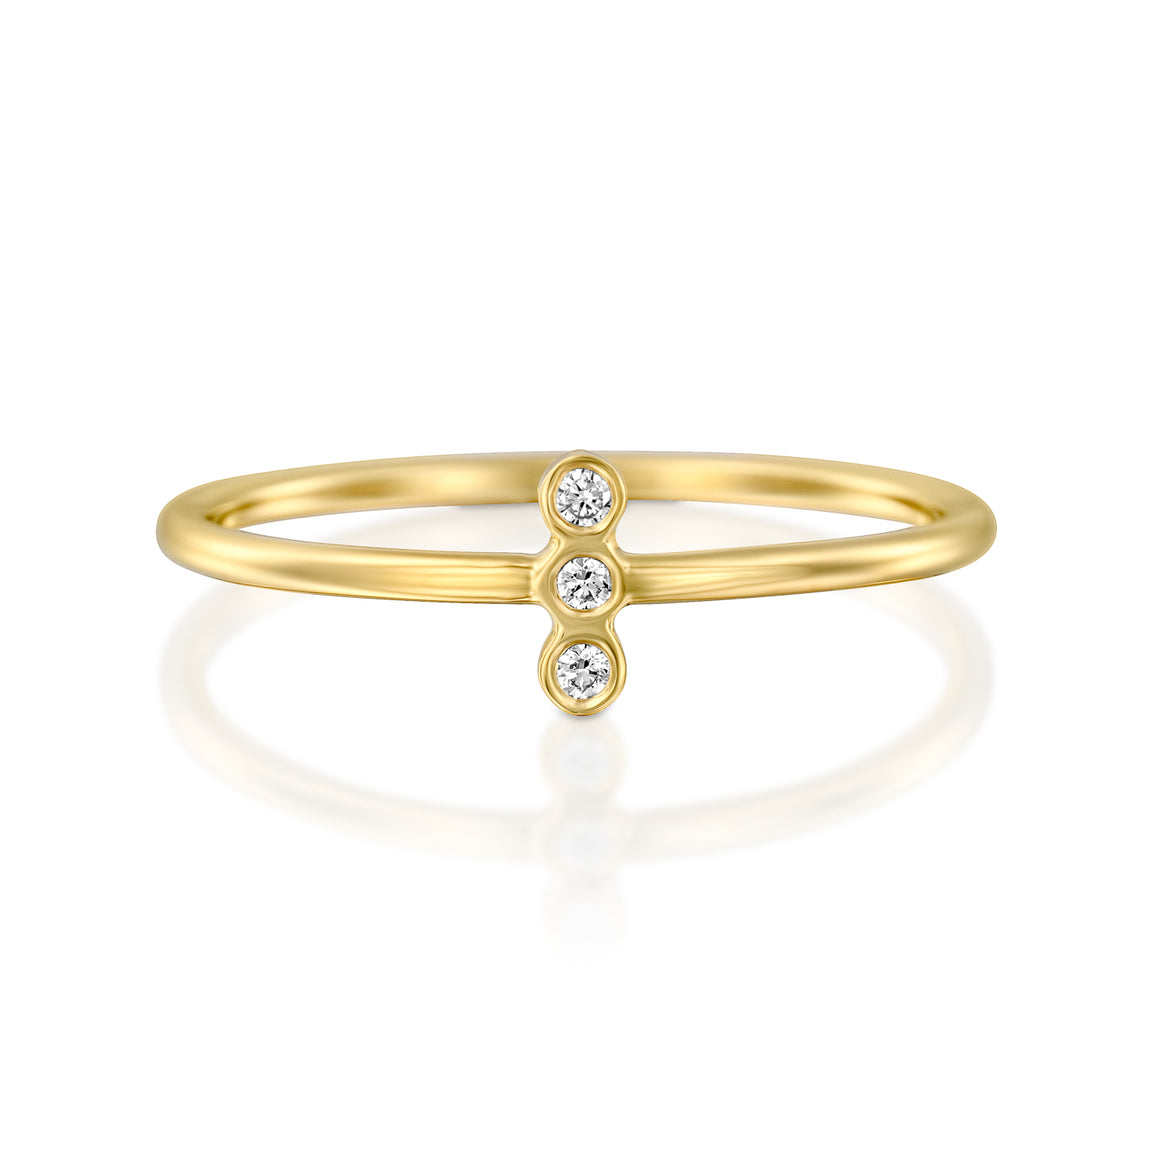 14ct Gold and Diamond Athena Ring. - Gemma Stone Jewellery